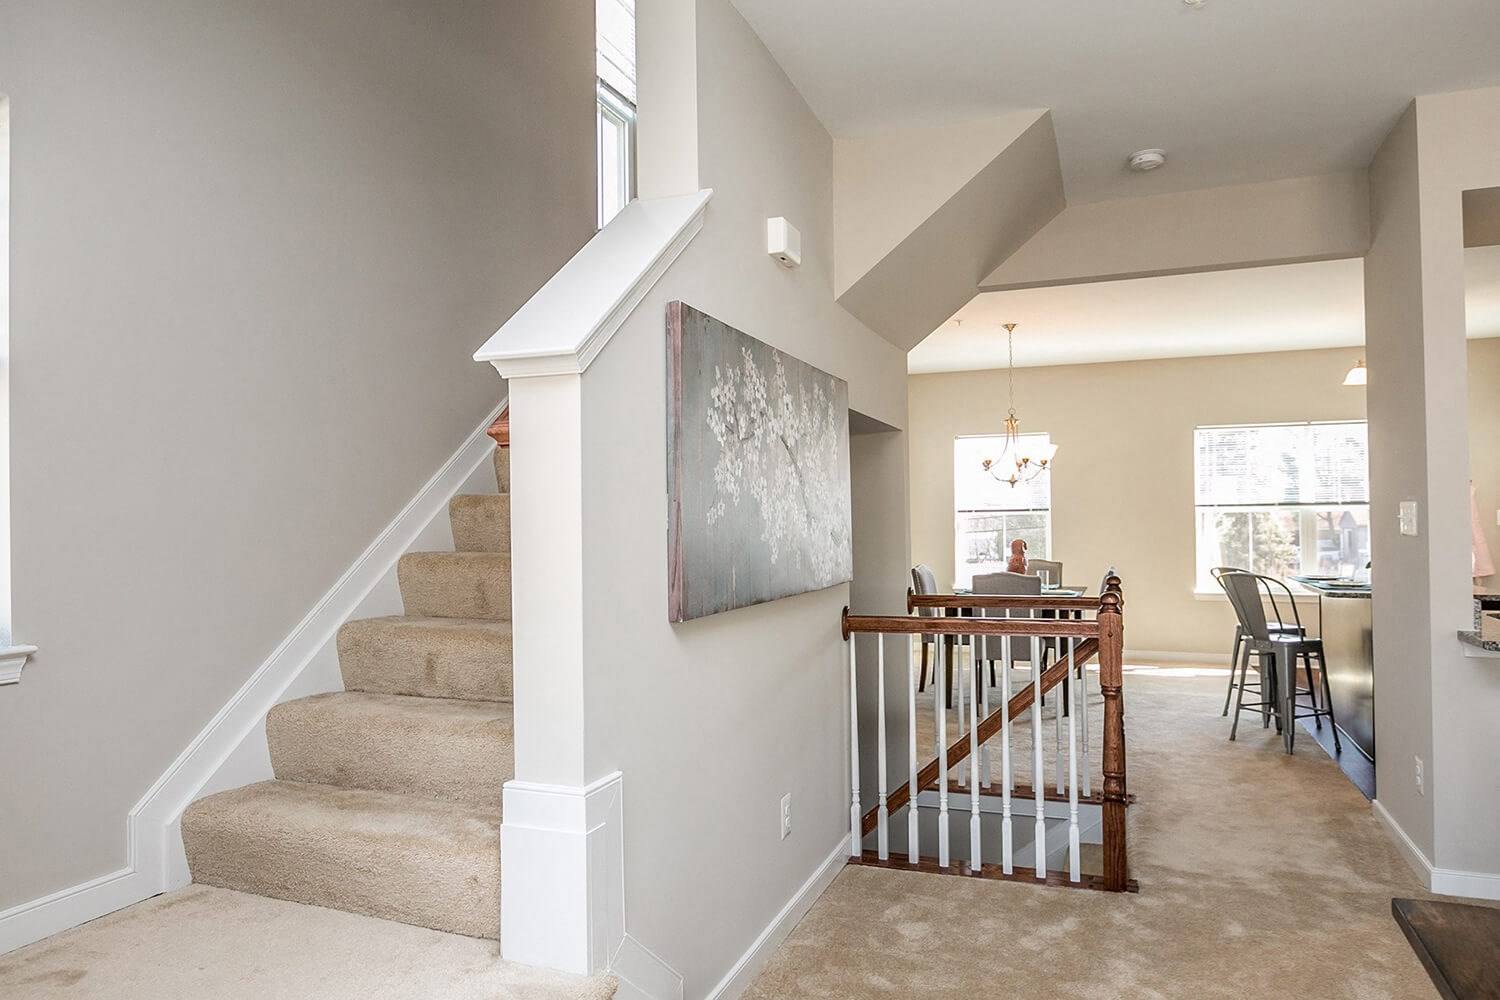 Plush carpet in living area and bedrooms at Townes at Pine Orchard, Ellicott City, Maryland